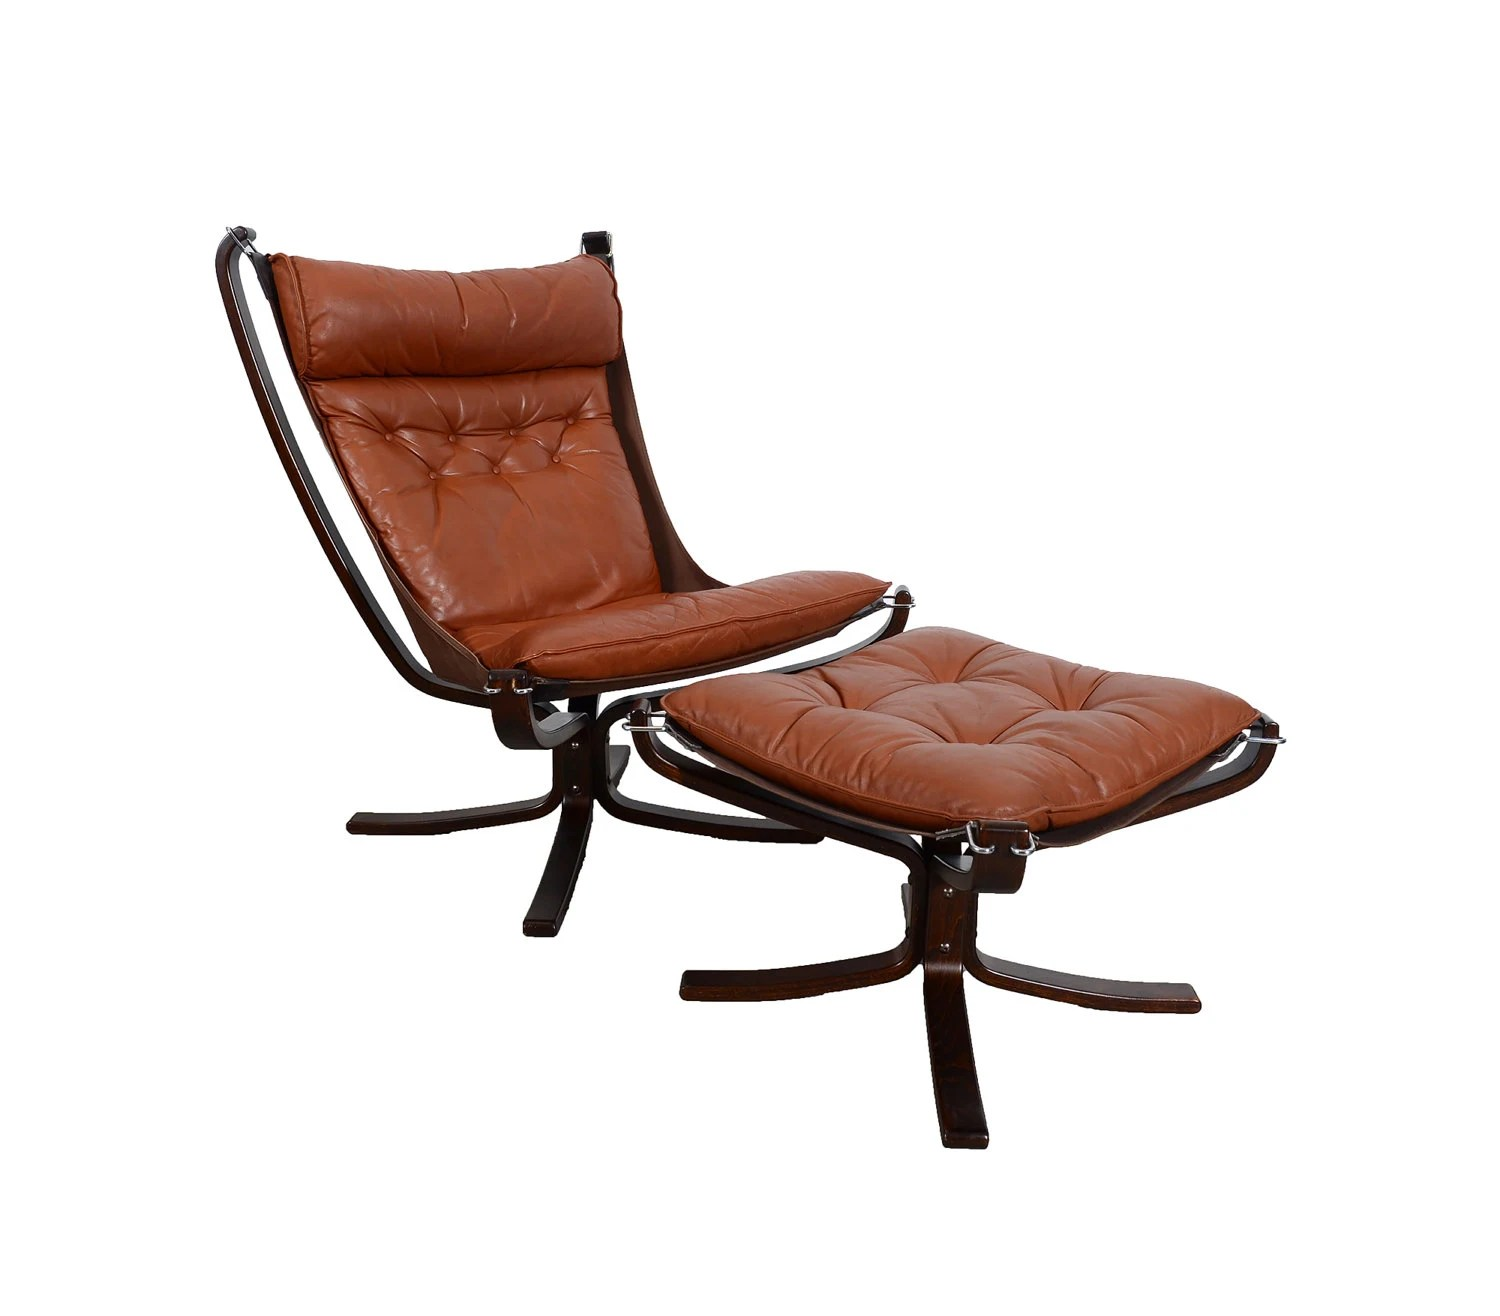 Falcon Chair Leather Falcon Chair And Ottoman Made By Vatne Mobler Designed By Sigurd Ressell Norway Danish Modern